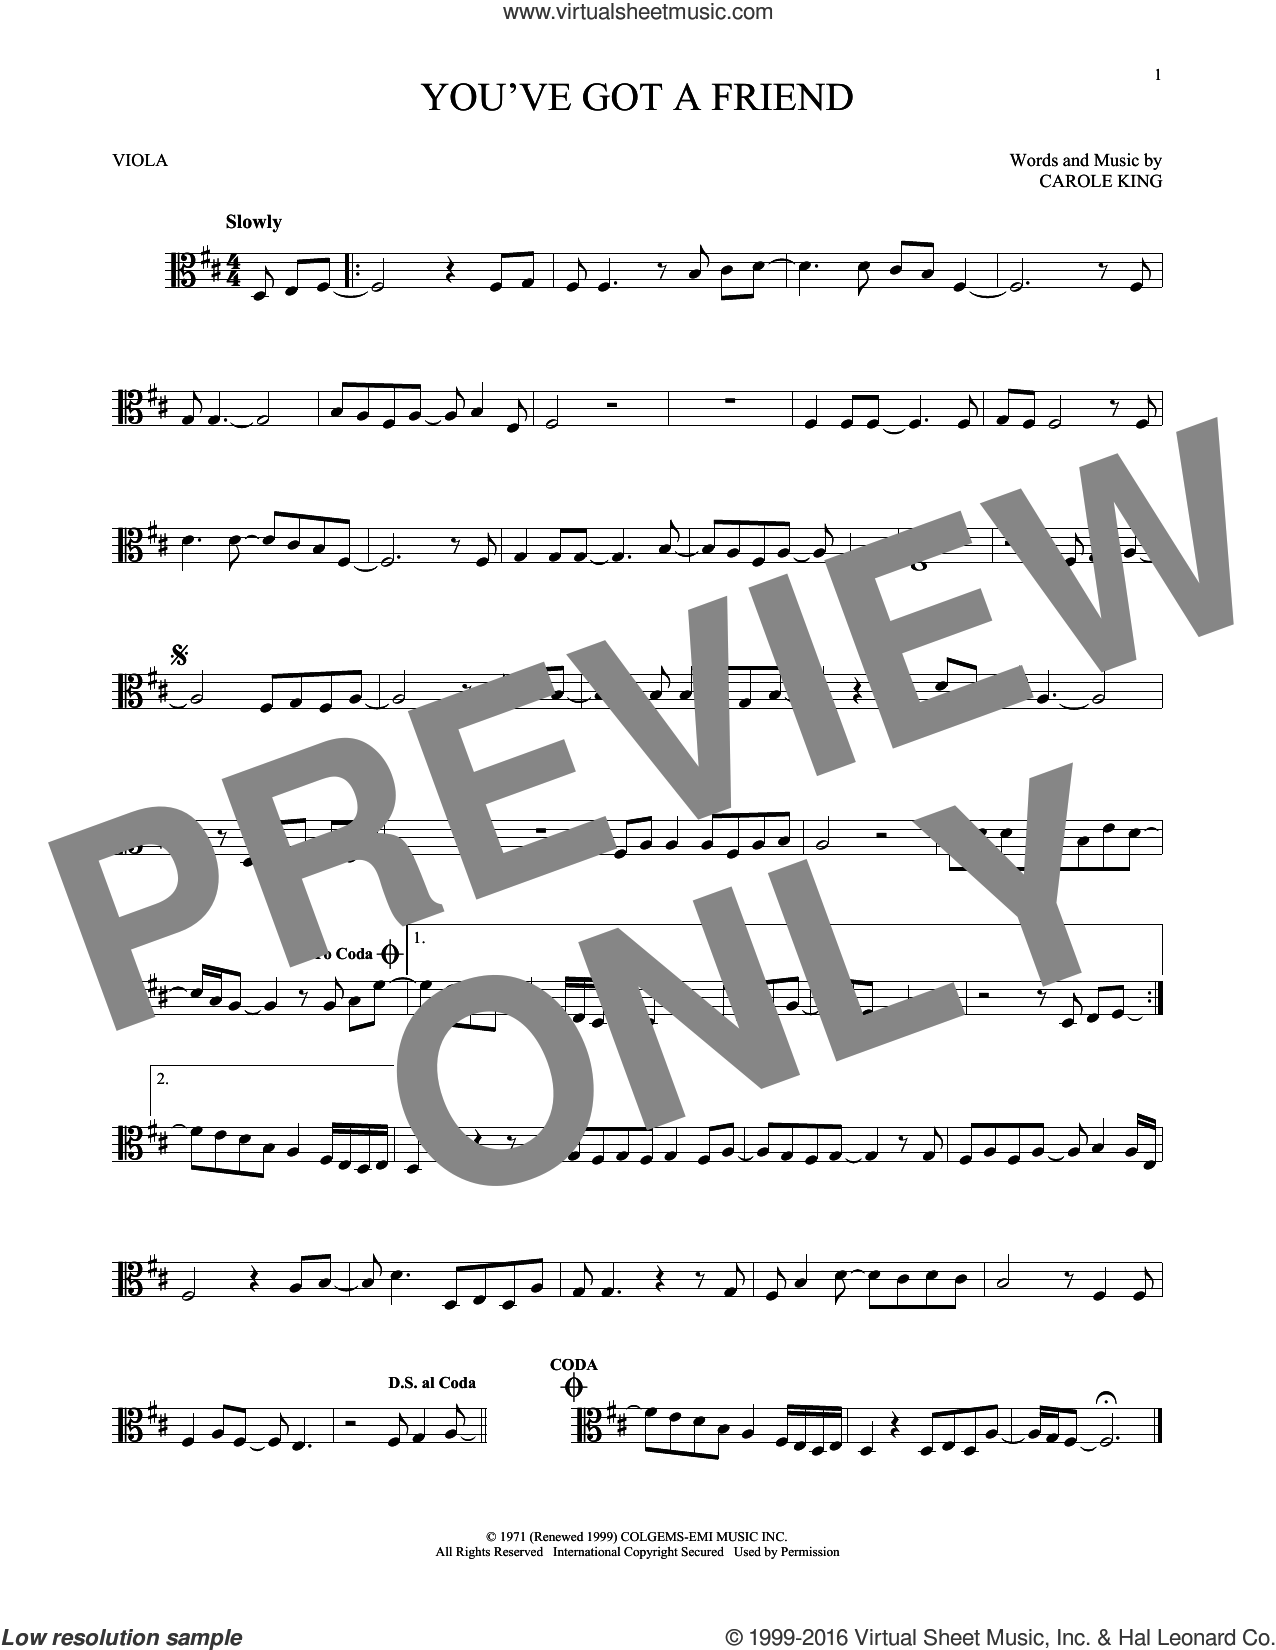 You've Got A Friend sheet music for viola solo by James Taylor and Carole King, intermediate skill level